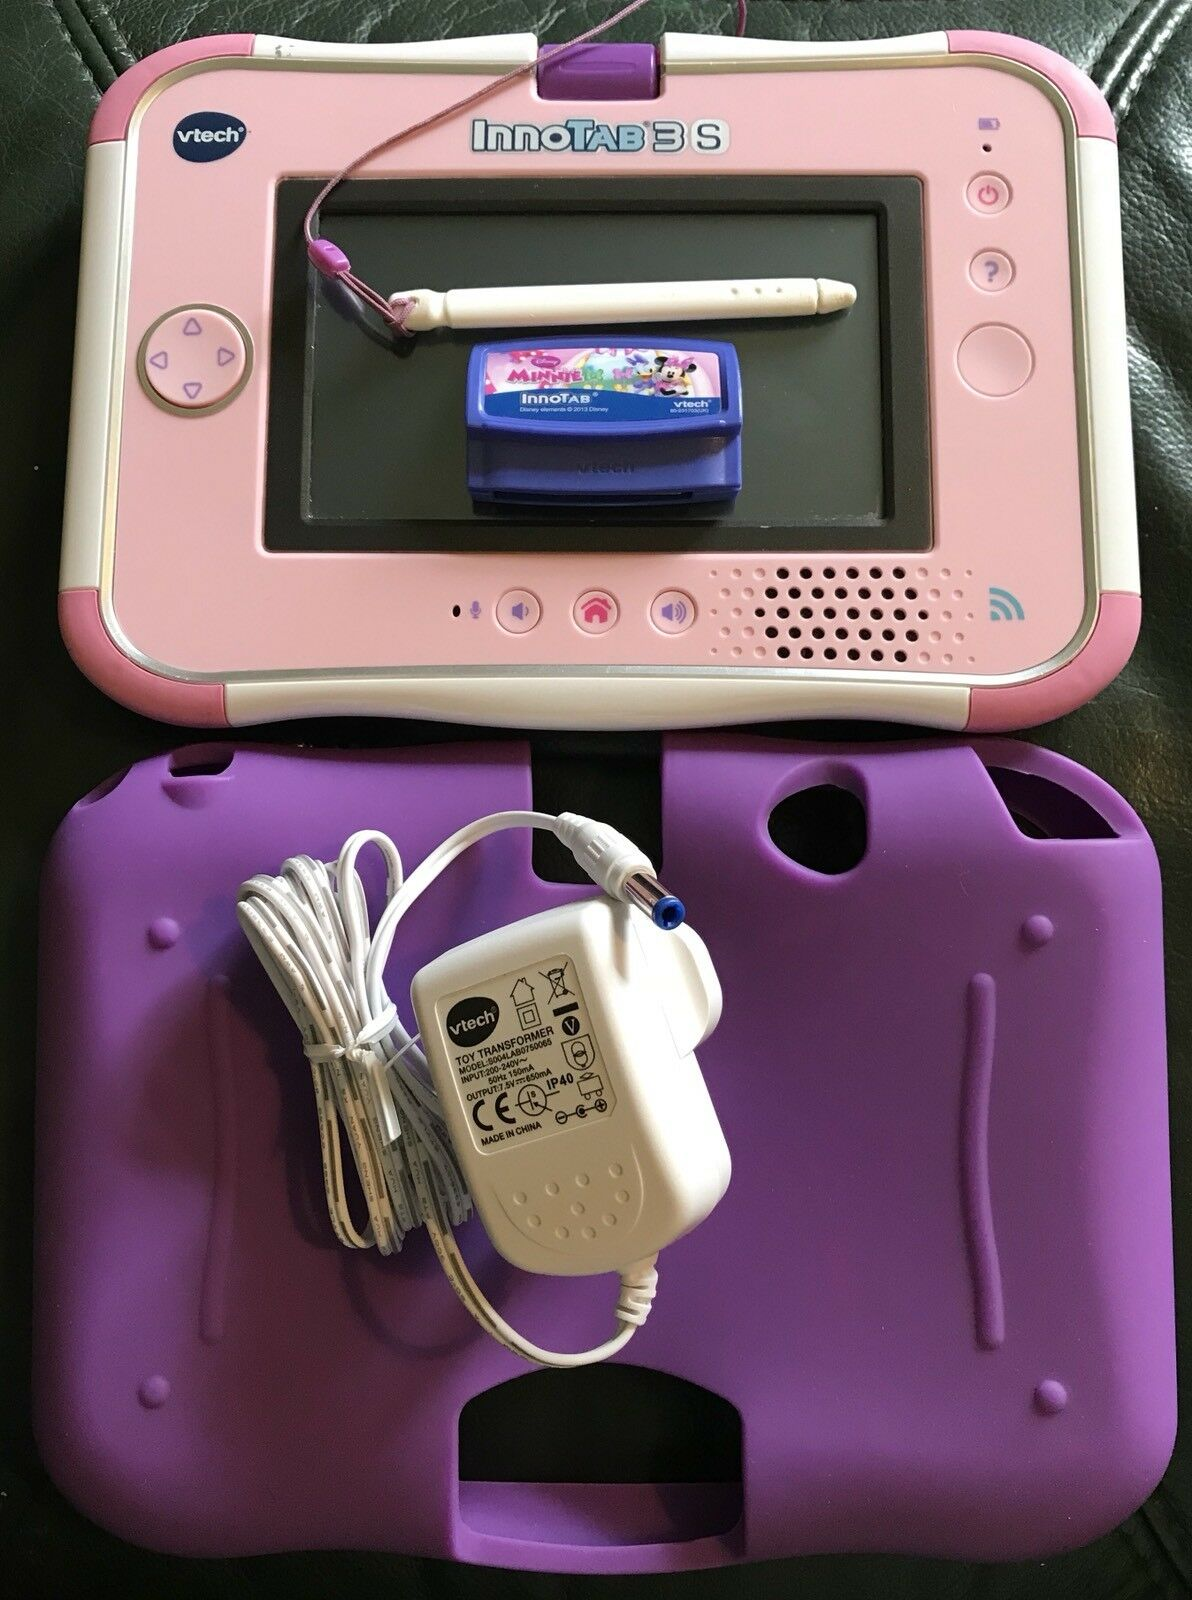 Pink Vtech Innotab 3S Plus Minnie Game, Downloaded Games, Charger And Gel Skin